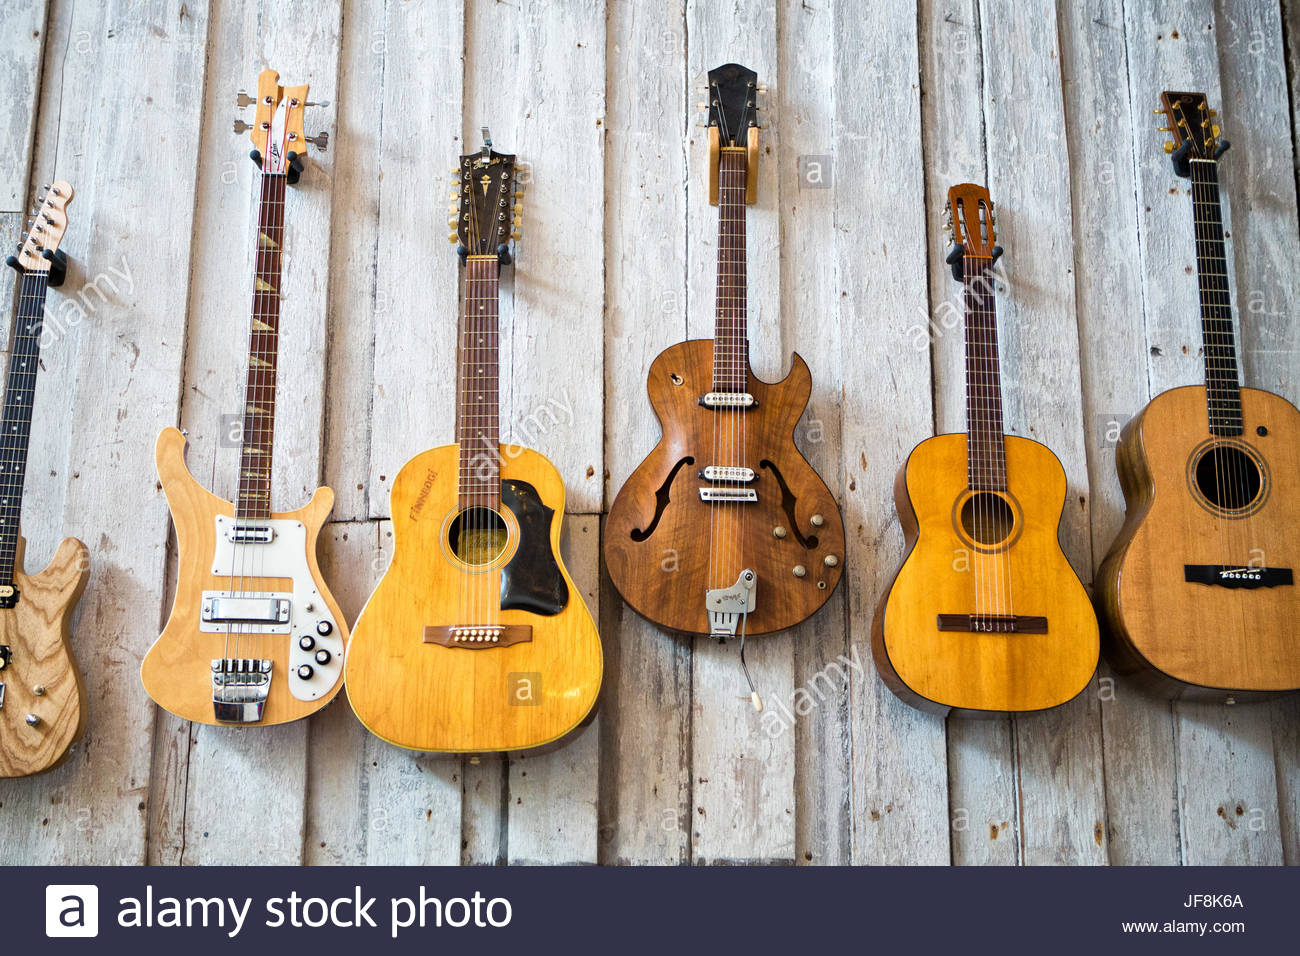 Wall Of Guitars Banque D Image Et Photos Alamy